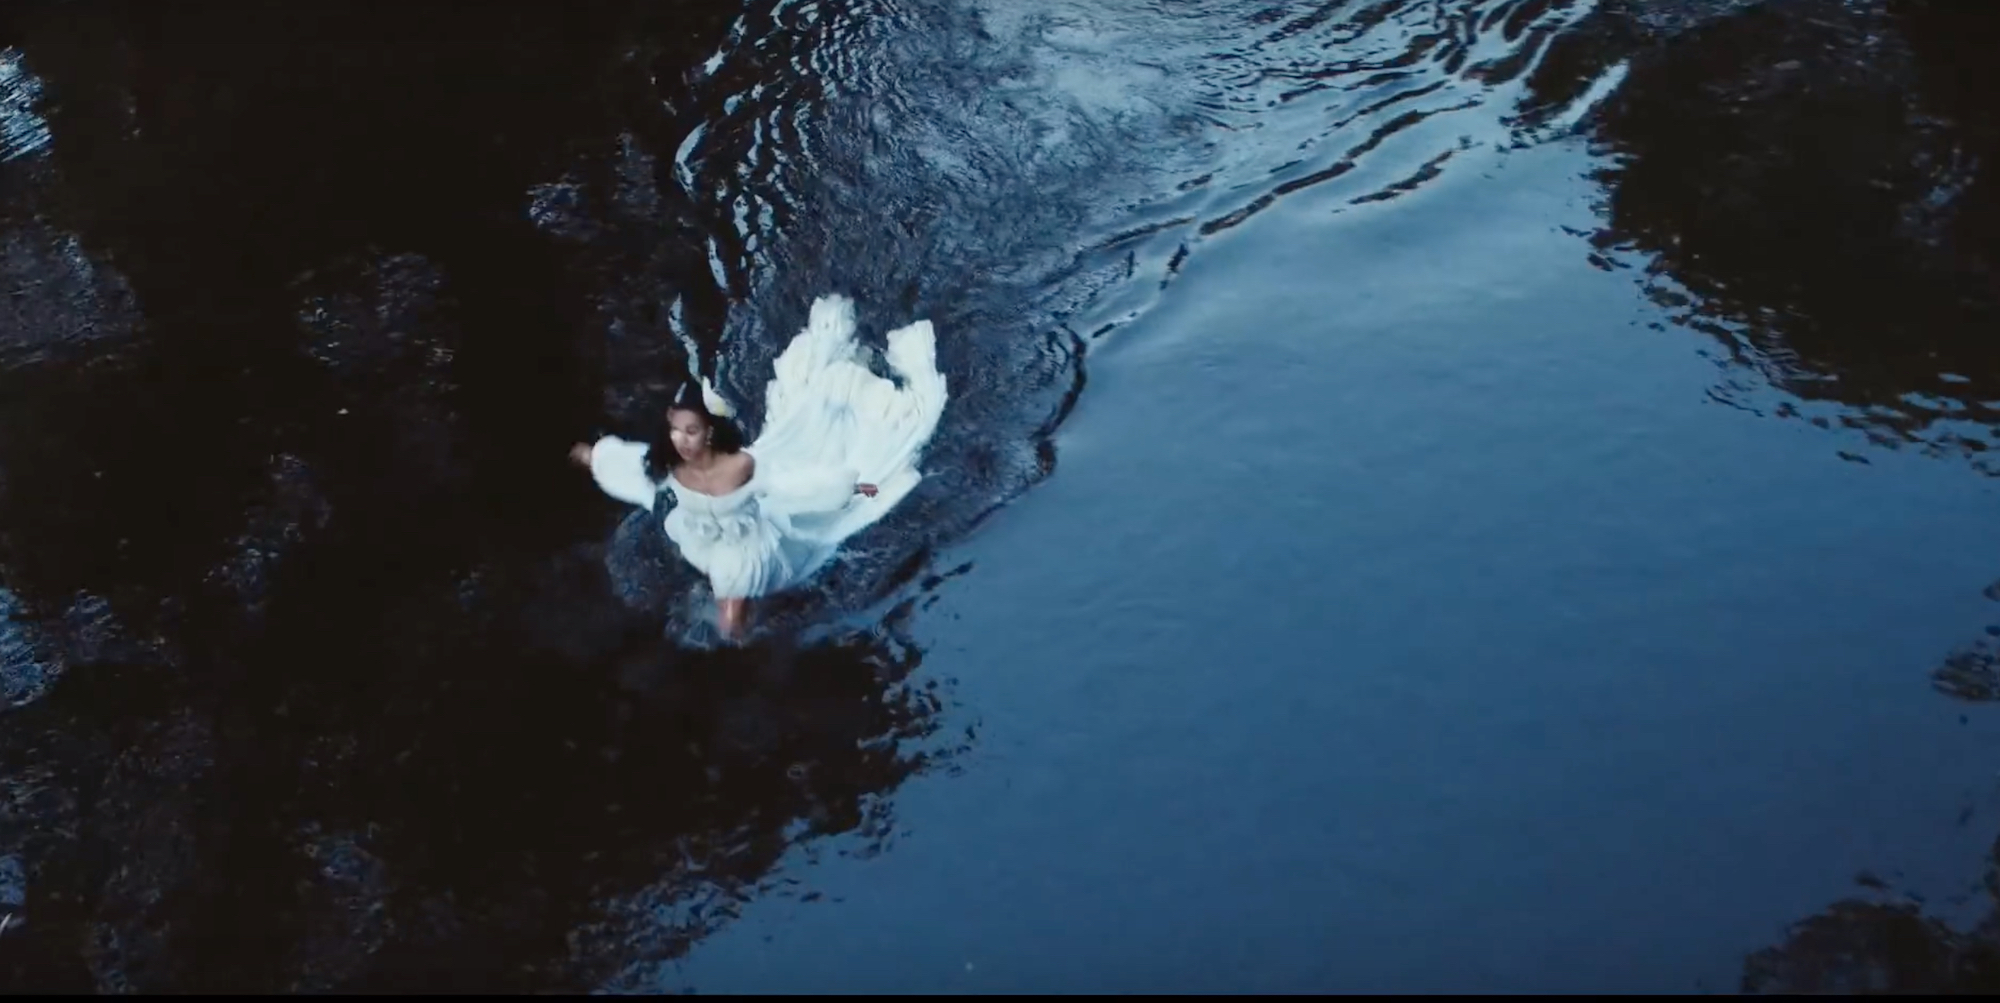 Wonderland FKA Twigs new music video water